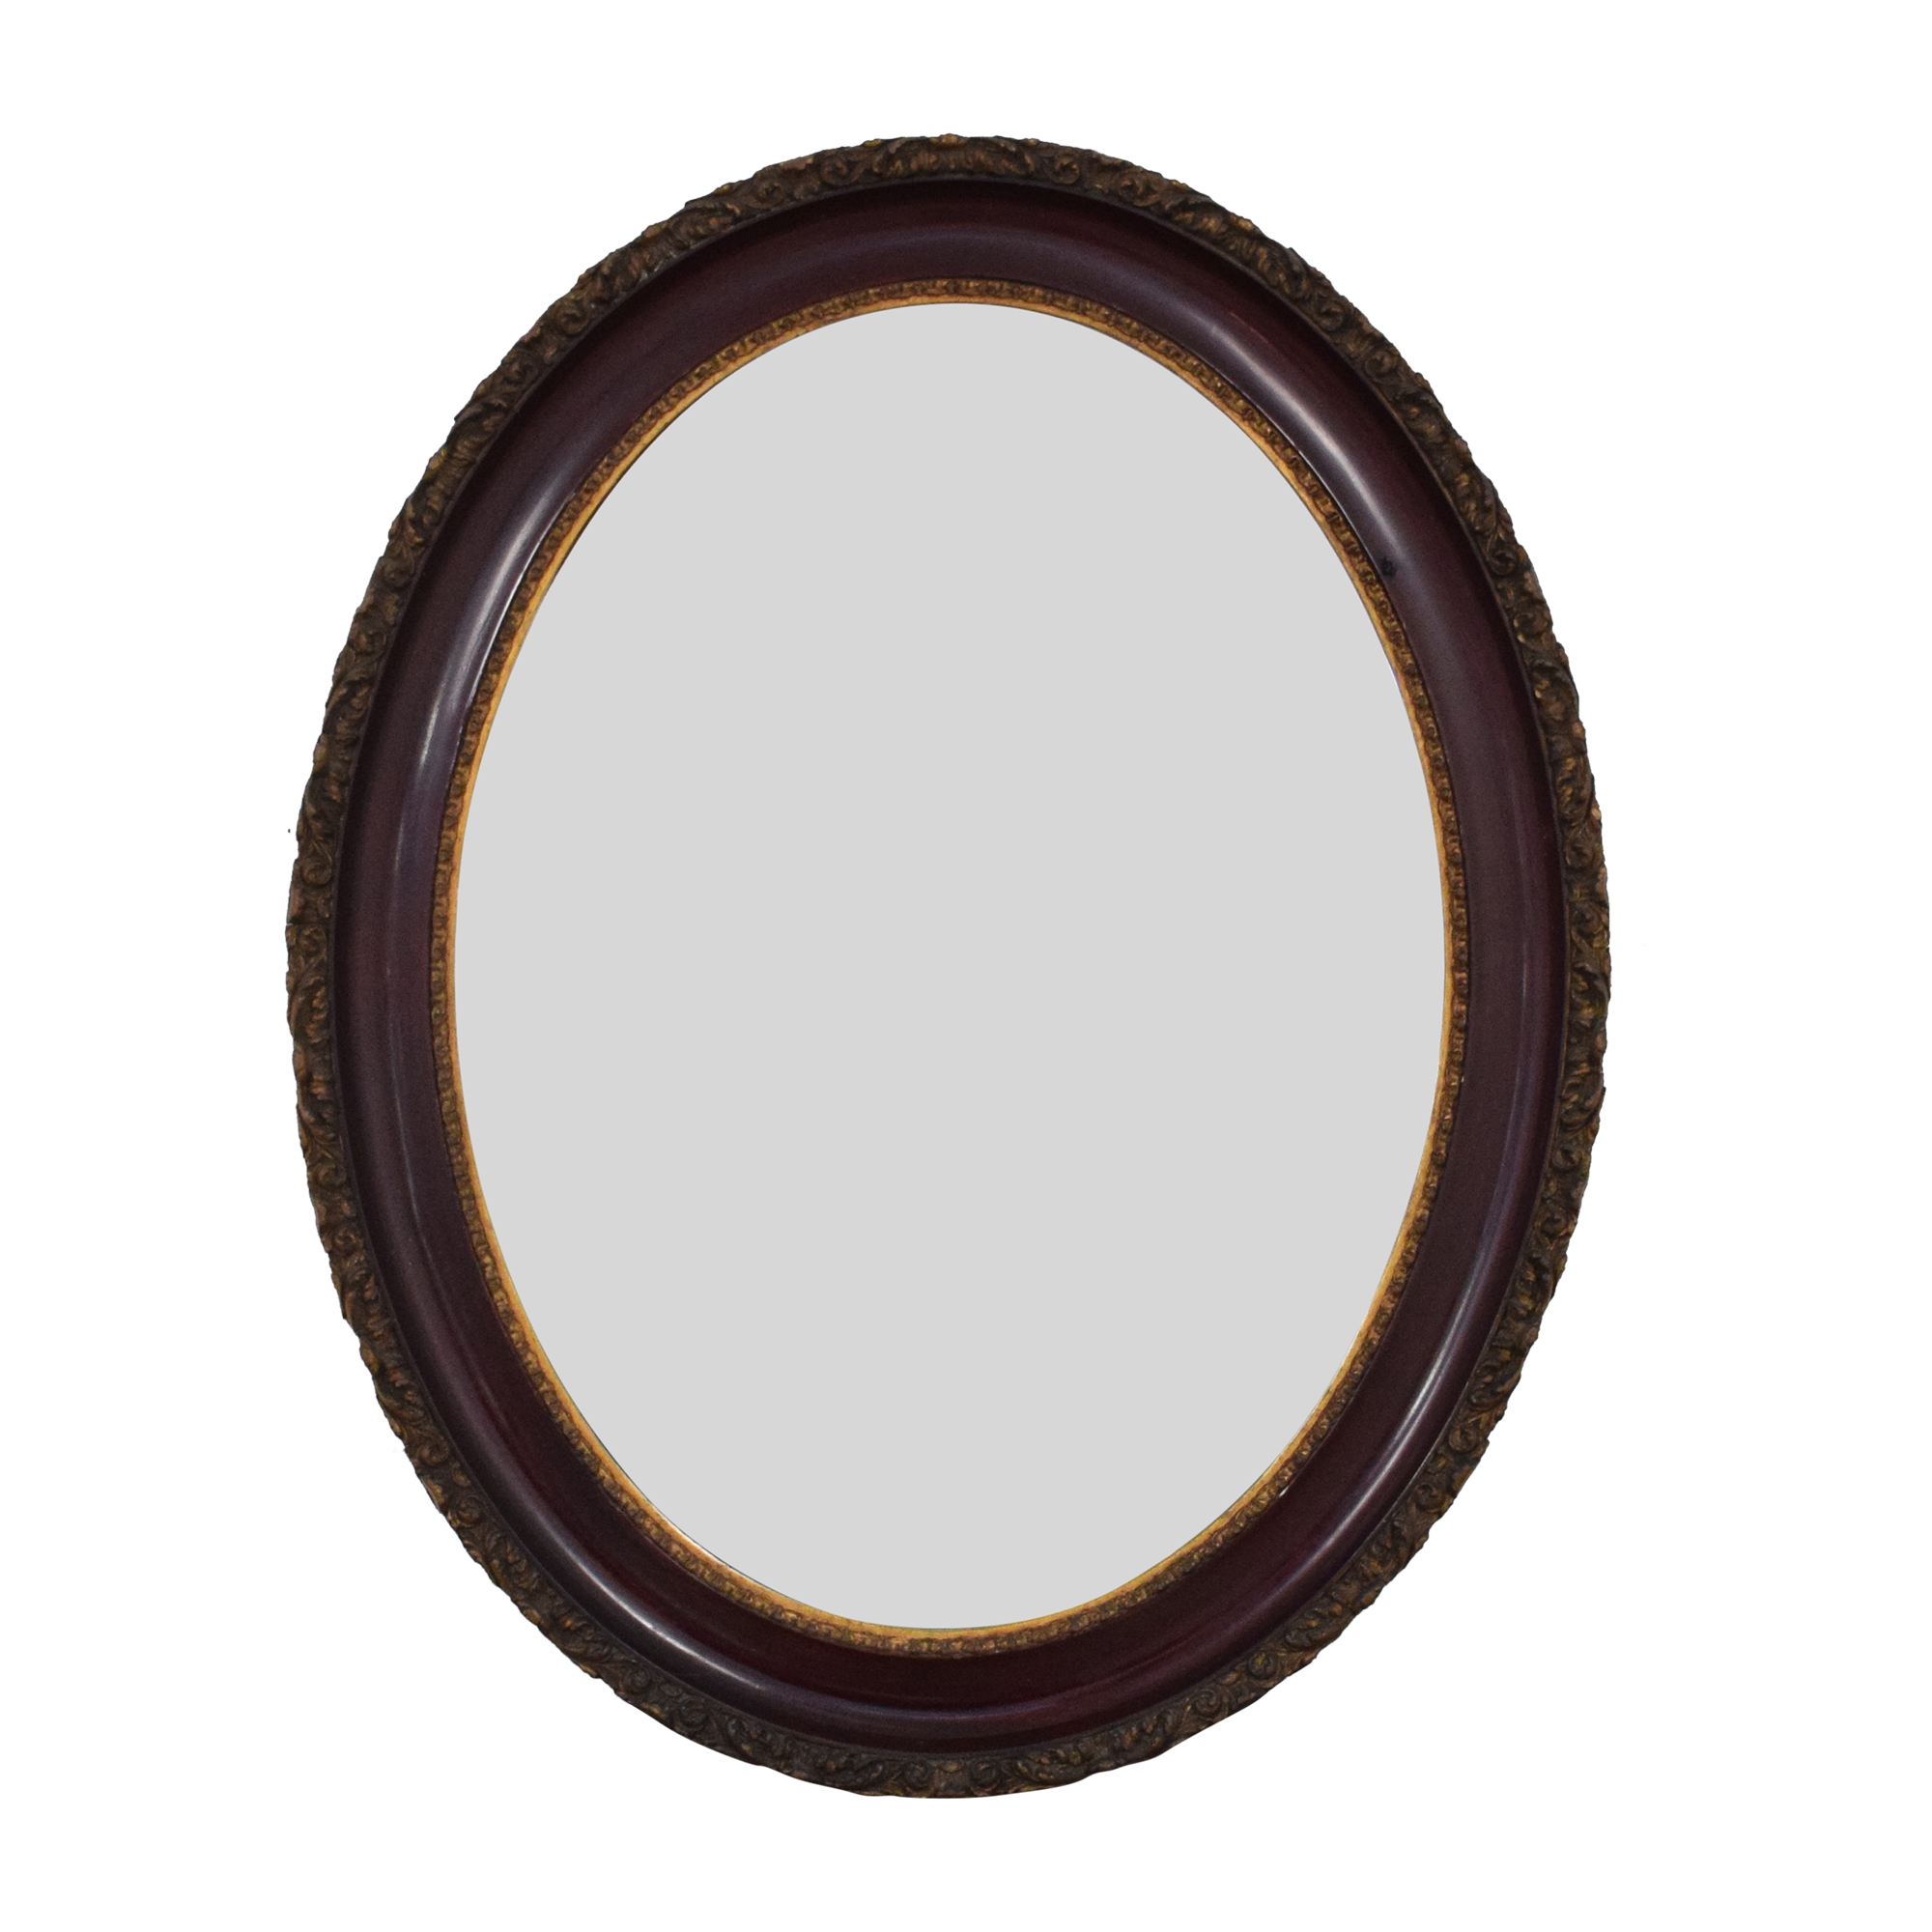 Oval Framed Wall Mirror pa